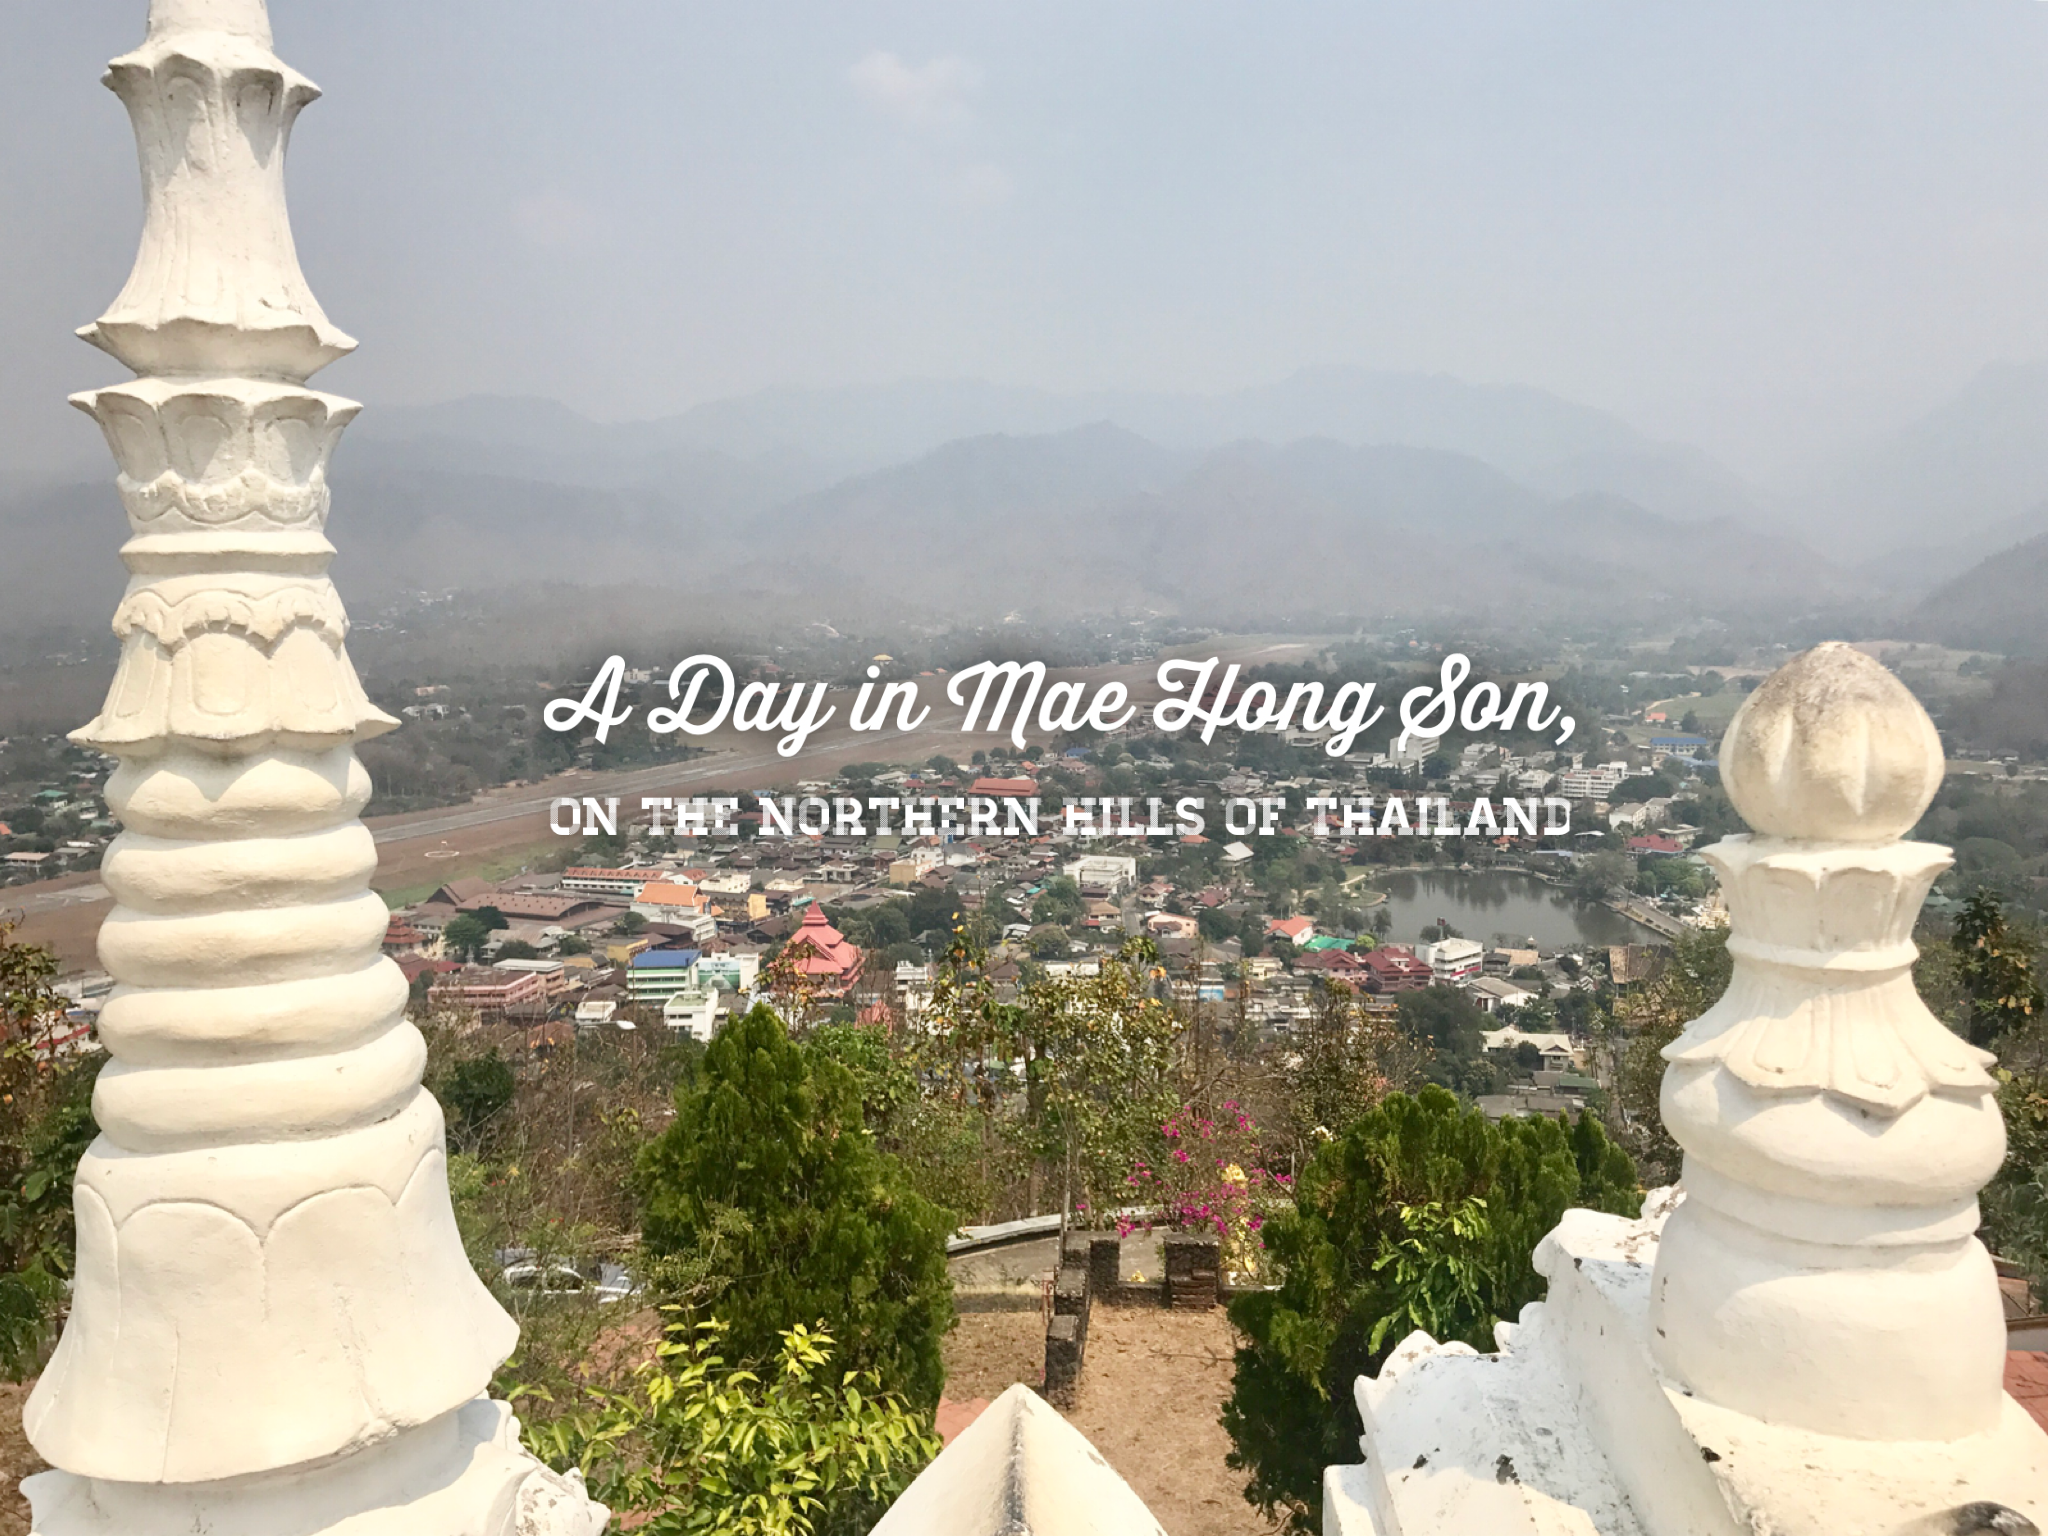 A Day in Mae Hong Son, on the Northern Hills of Thailand